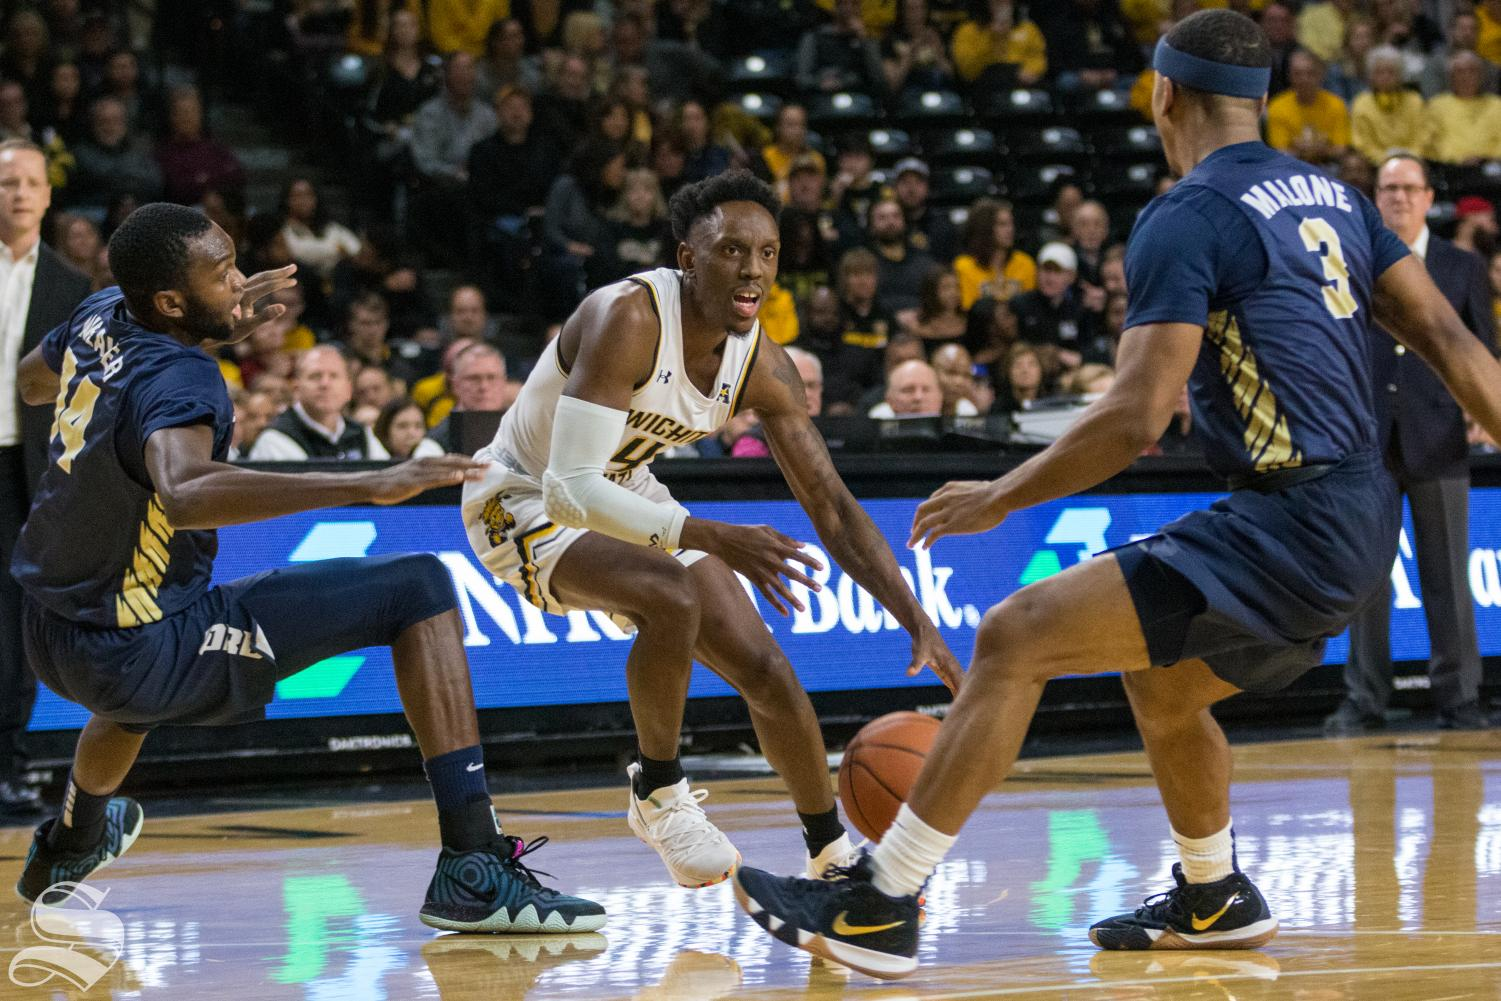 Wichita State senior Samajae Haynes-Jones attempts to drive past Oral Roberts defenders during the game at Koch Arena Wednesday, Dec. 19, 2018.